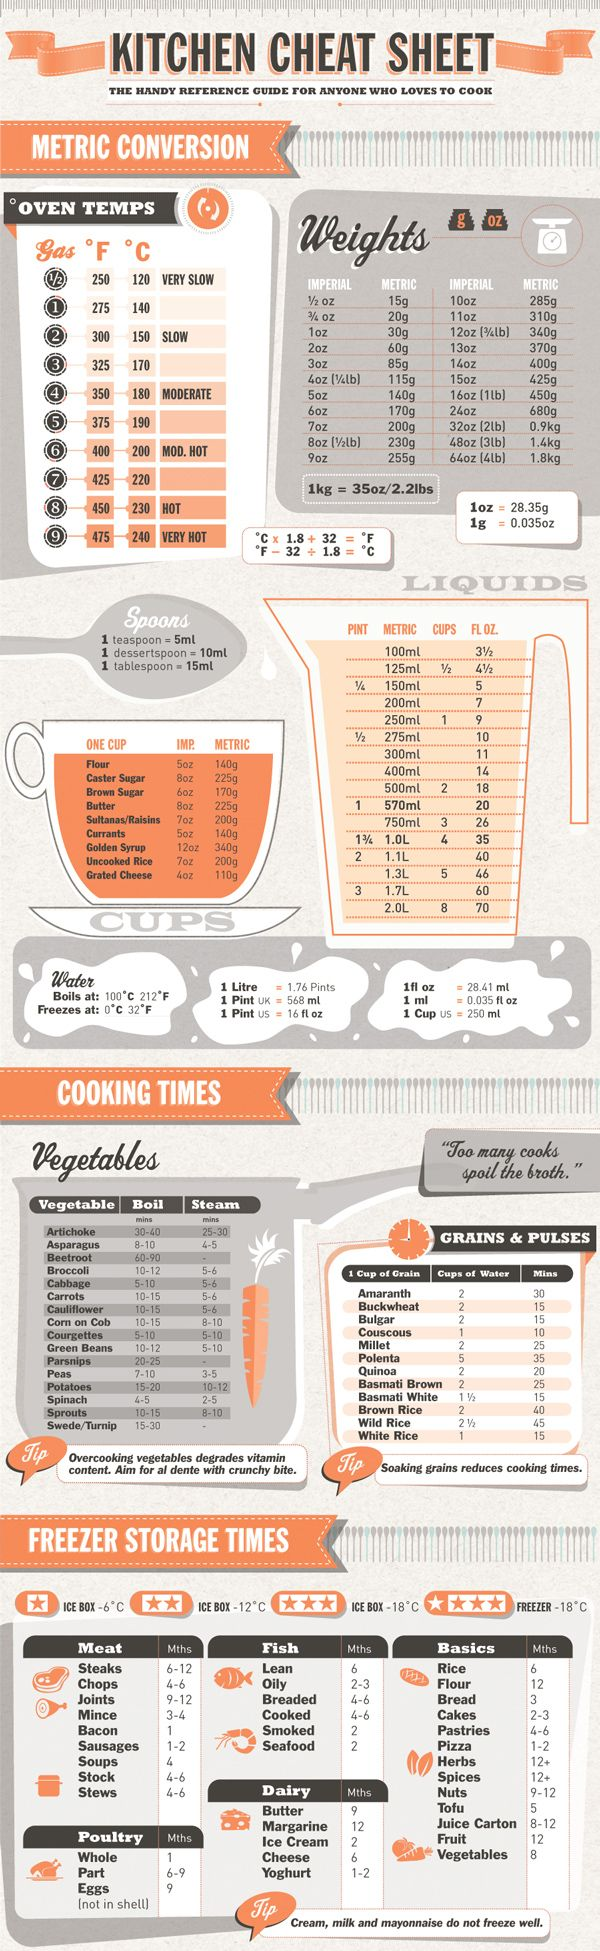 Kitchen cheat sheet conversion chart